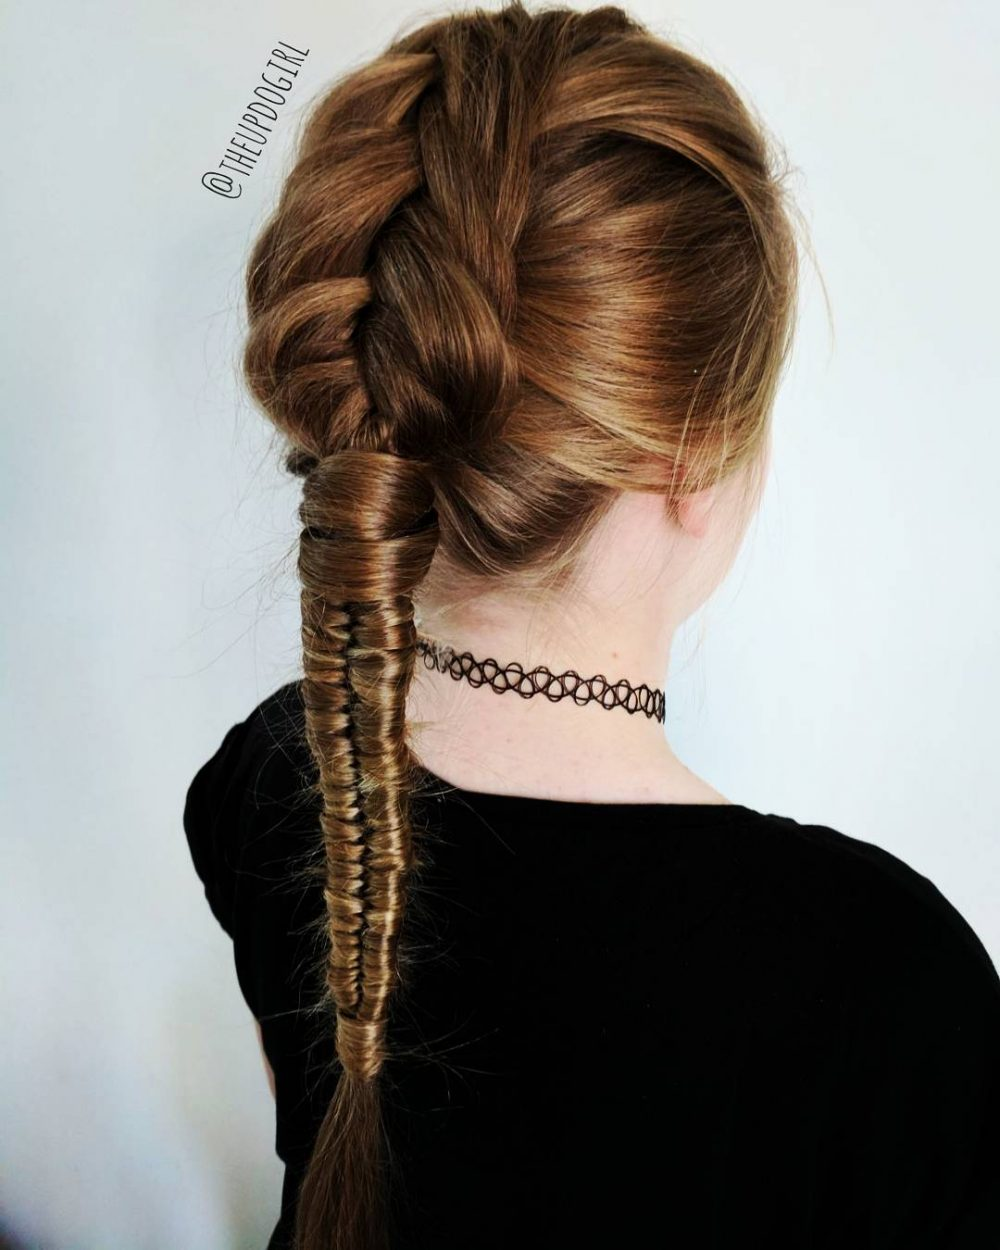 Modernized French Braid hairstyle